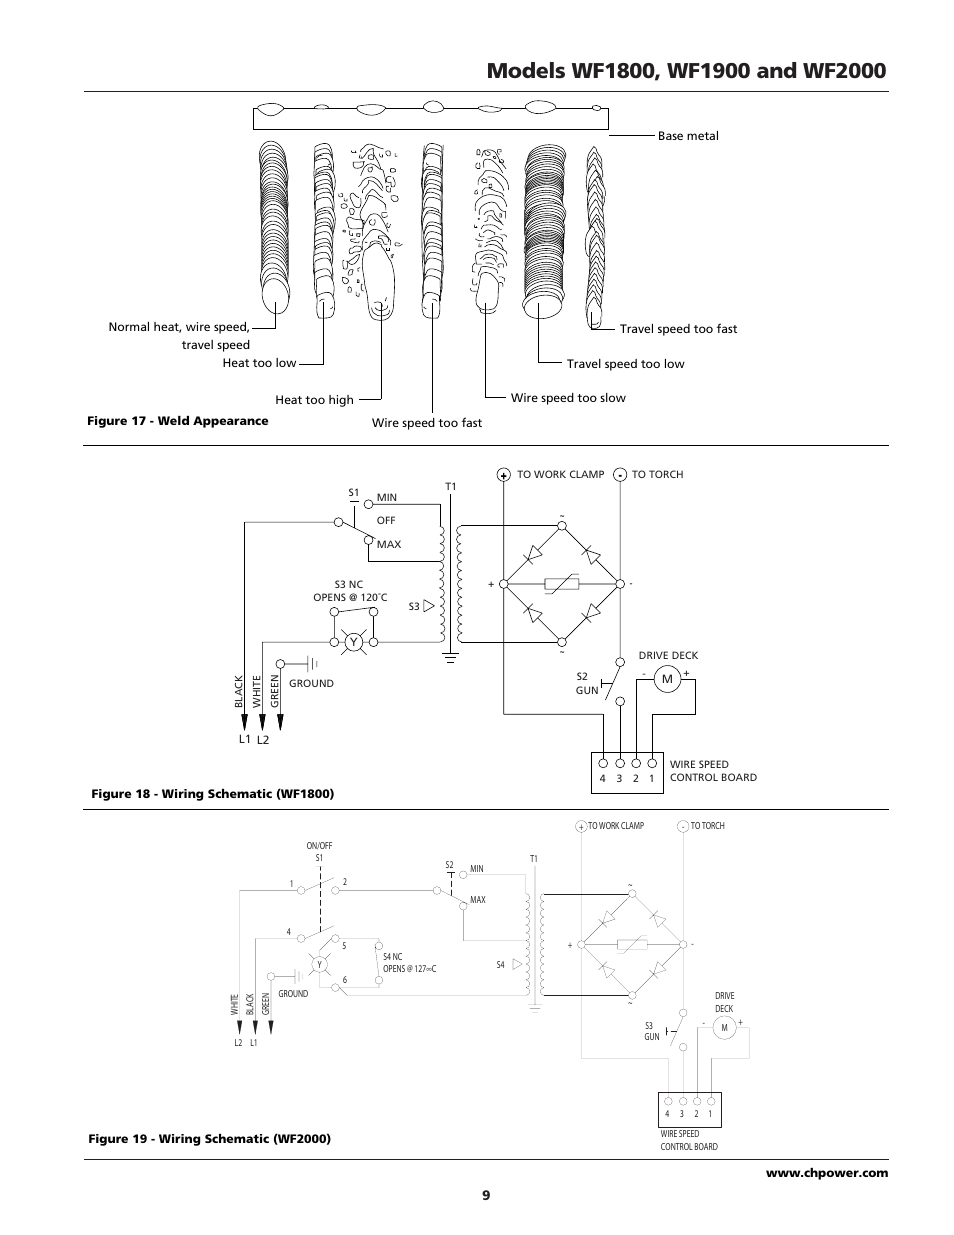 Wiring diagram for campbell hausfeld compressor speedaire